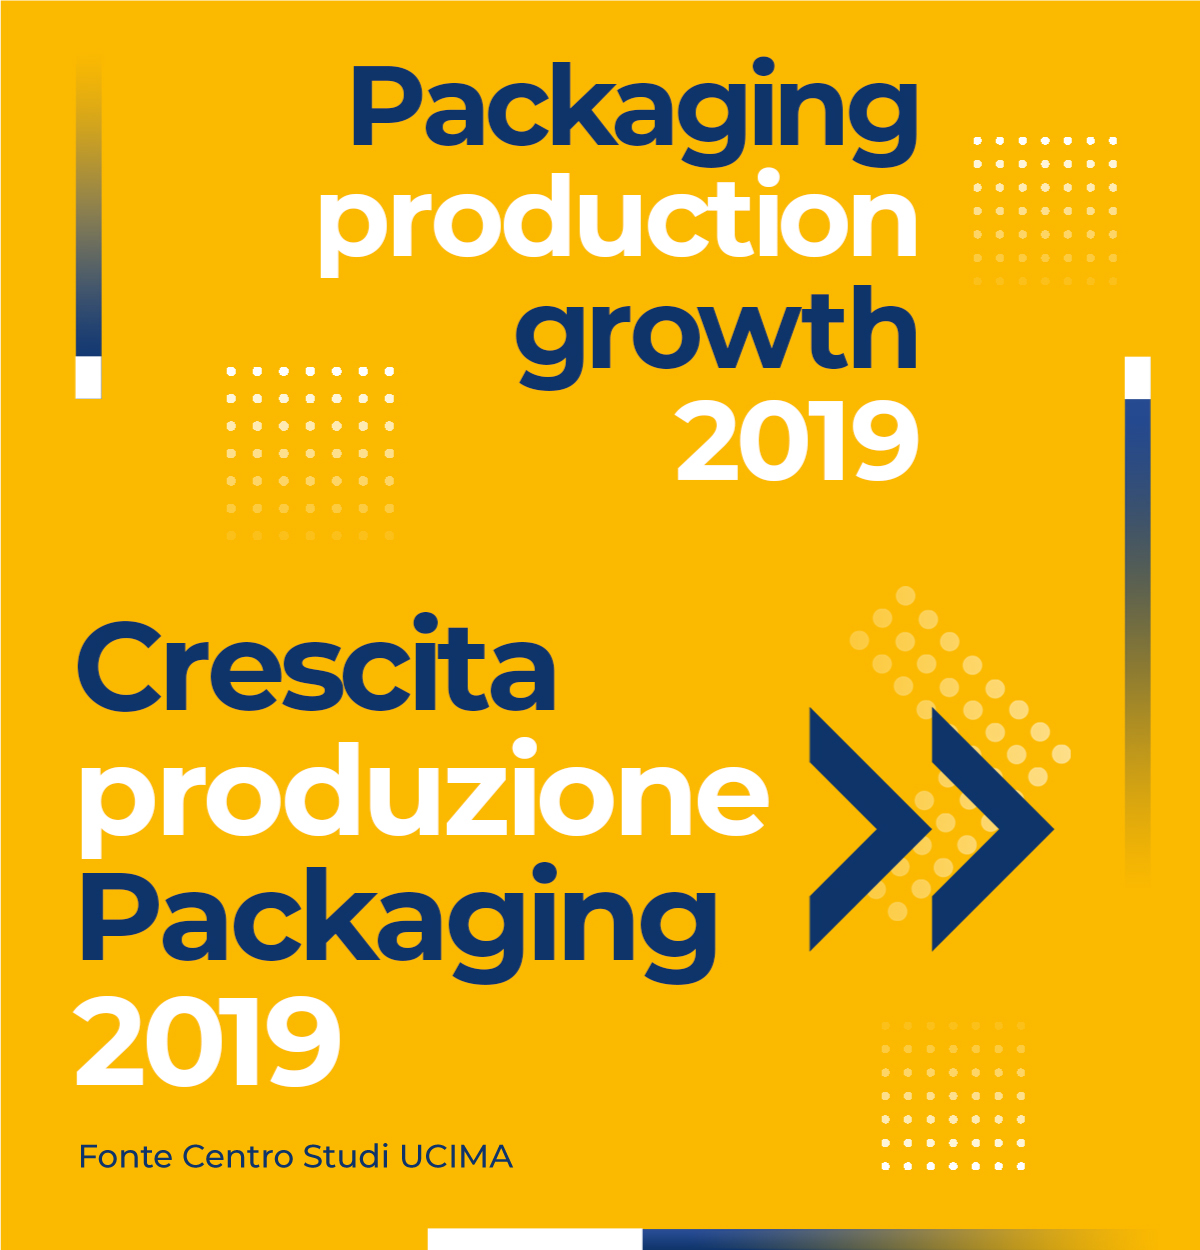 packaging data Italy 2019 UCIMA